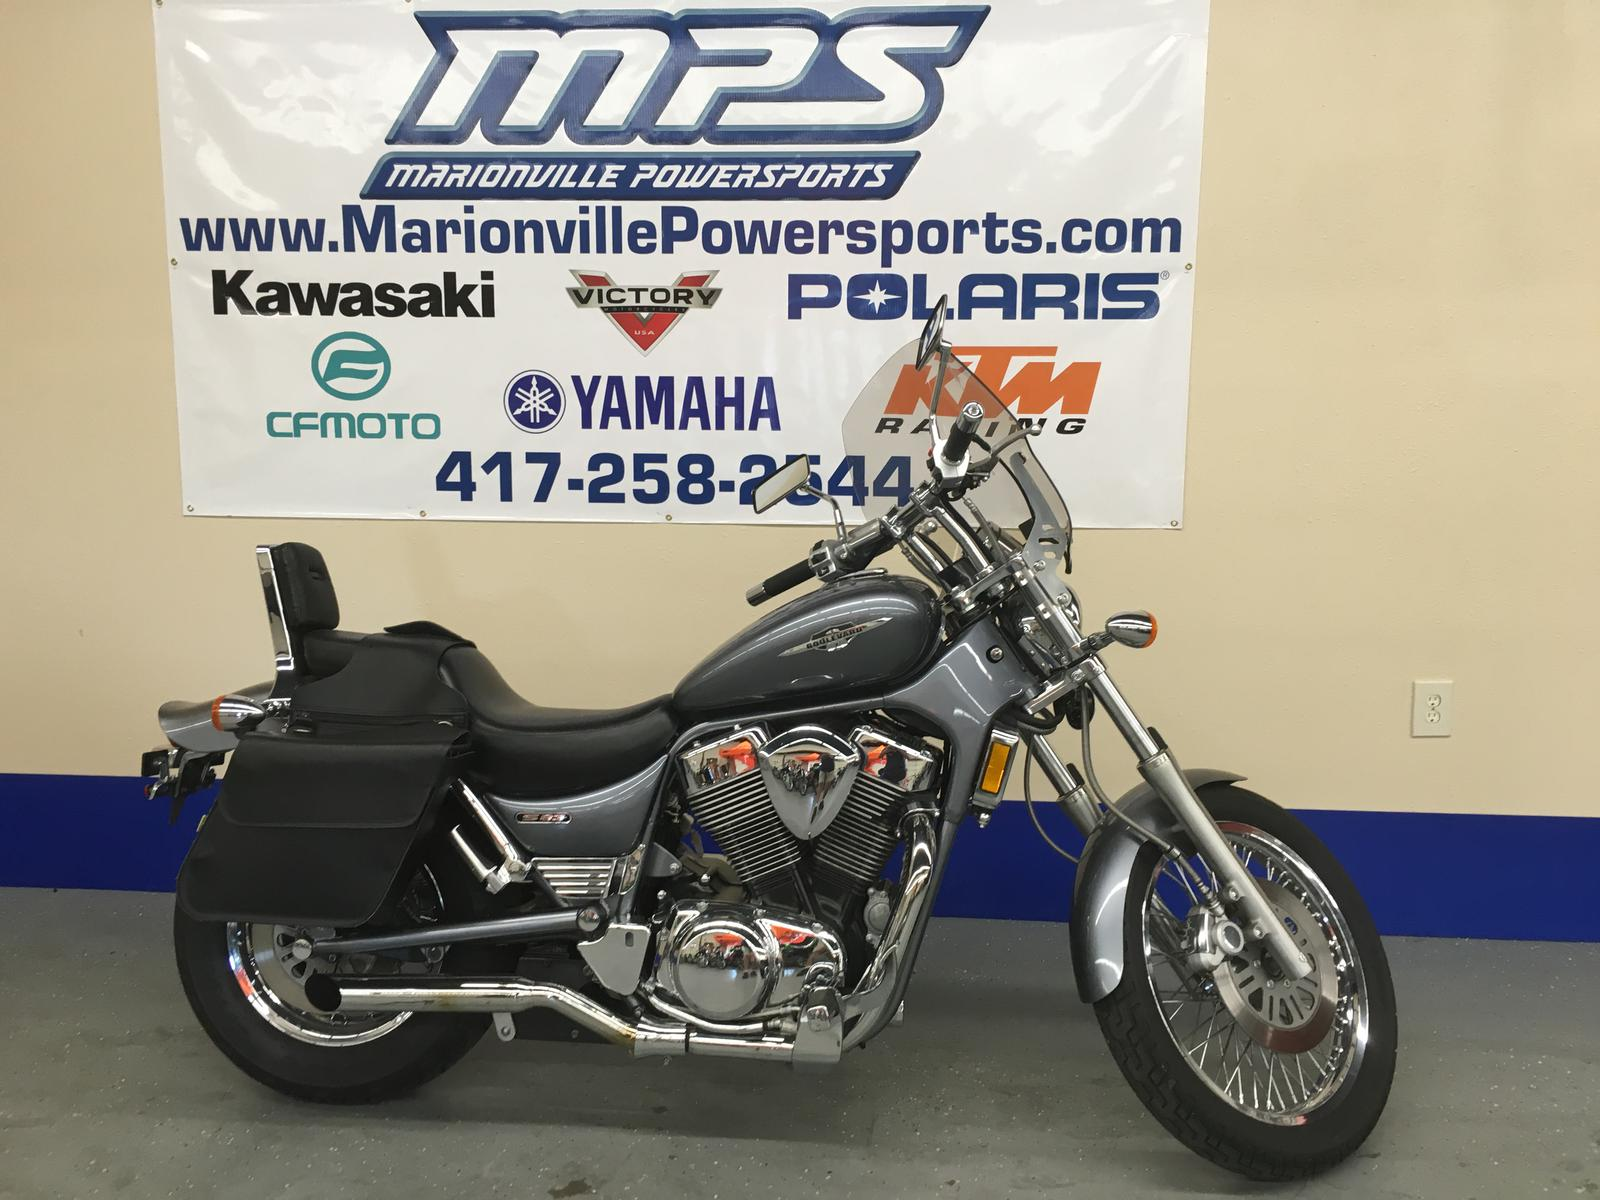 Inventory from Suzuki Marionville Powersports Marionville, MO (417